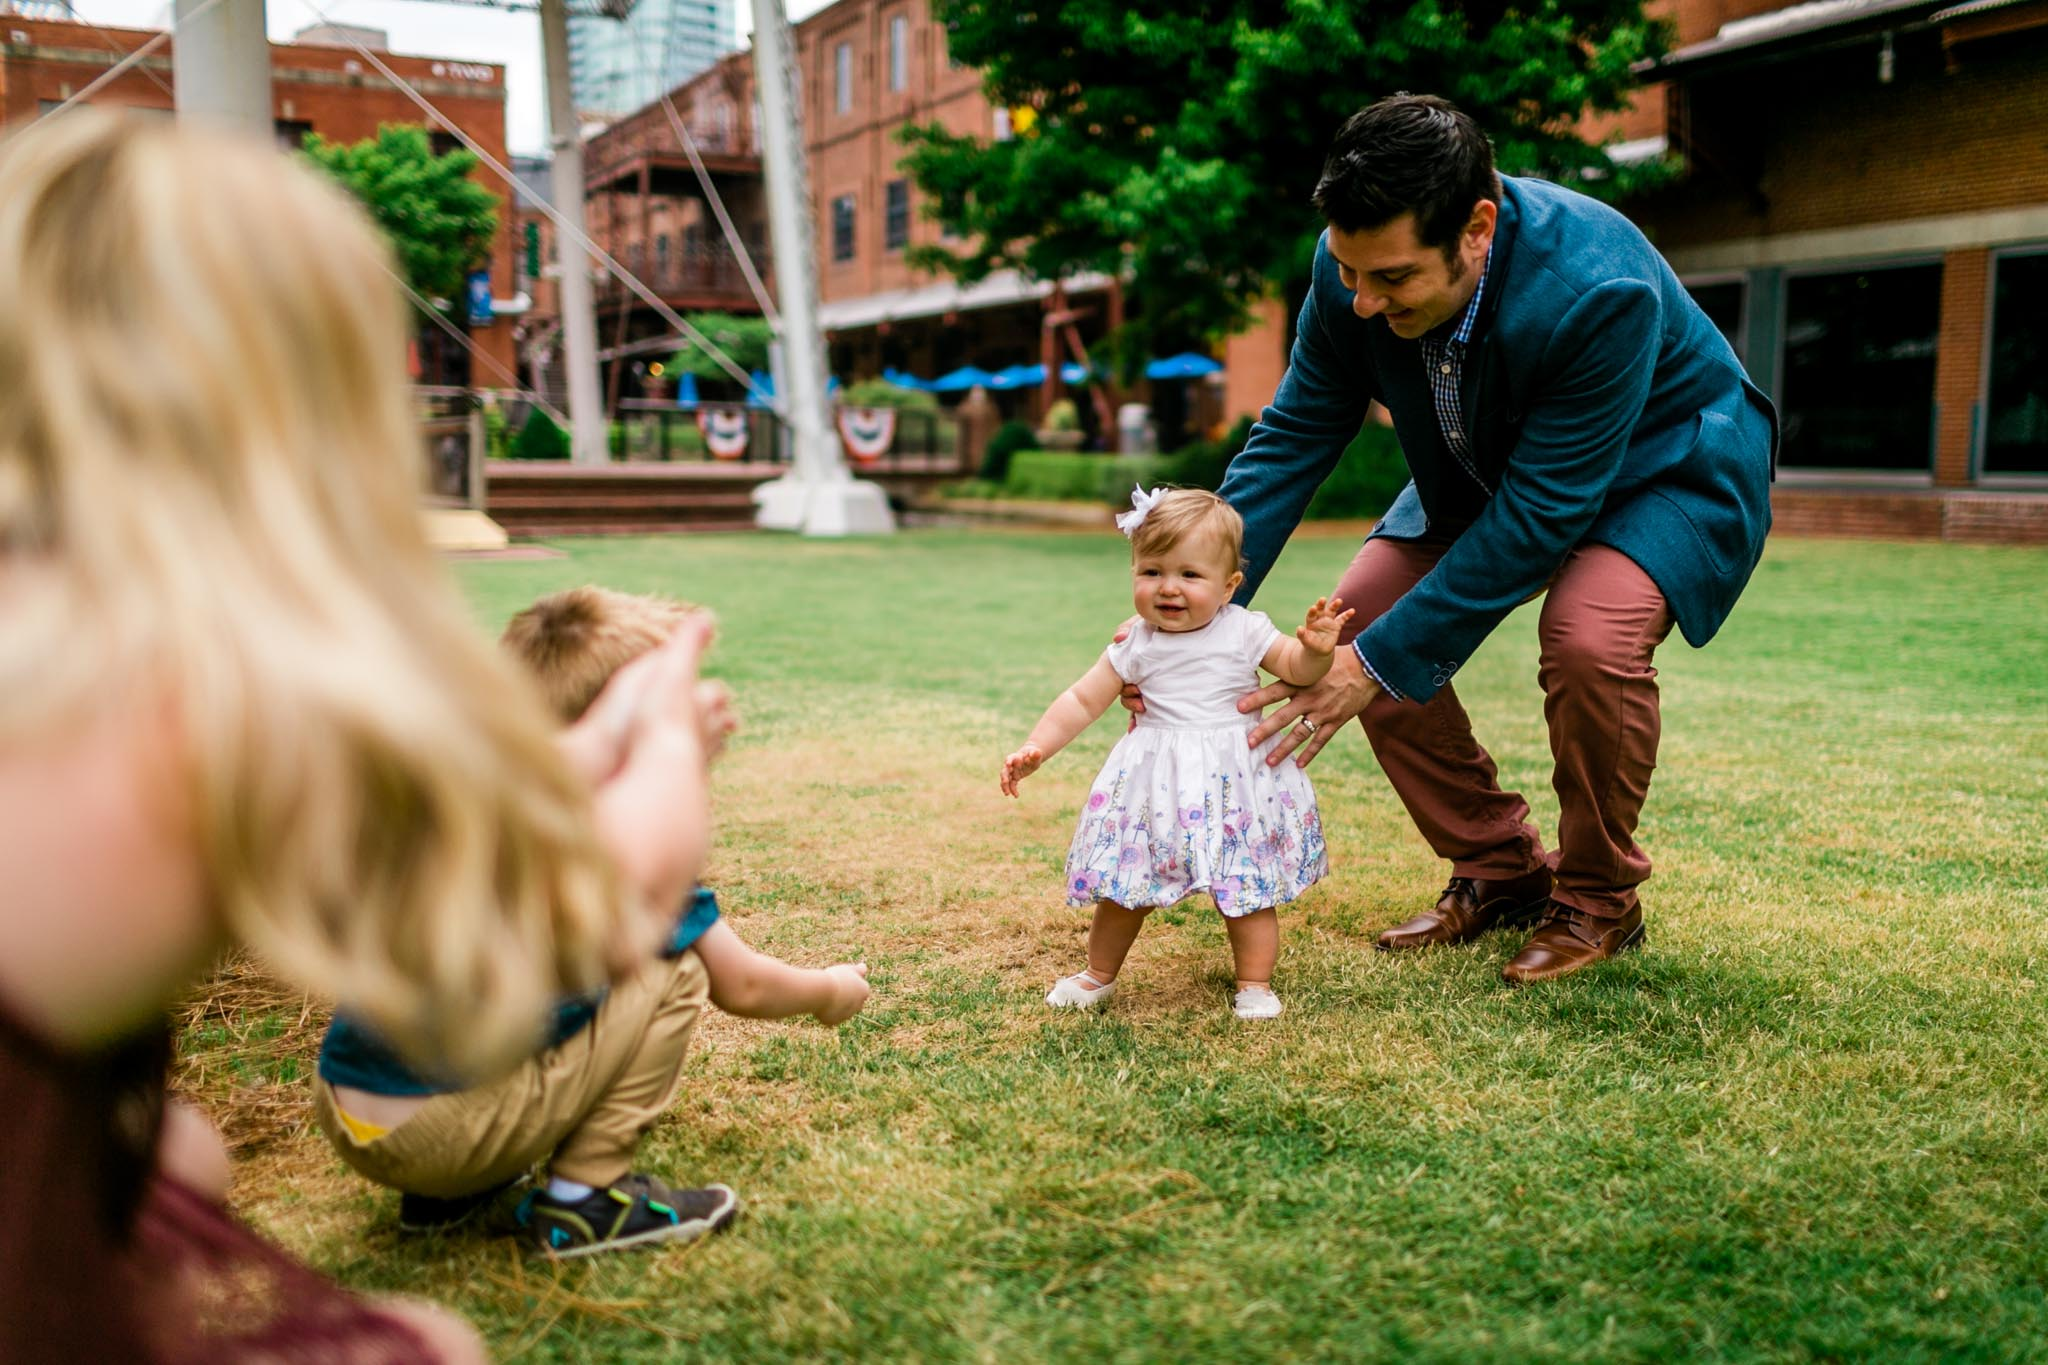 Durham Family Photographer | By G. Lin Photography | Baby girl taking first steps